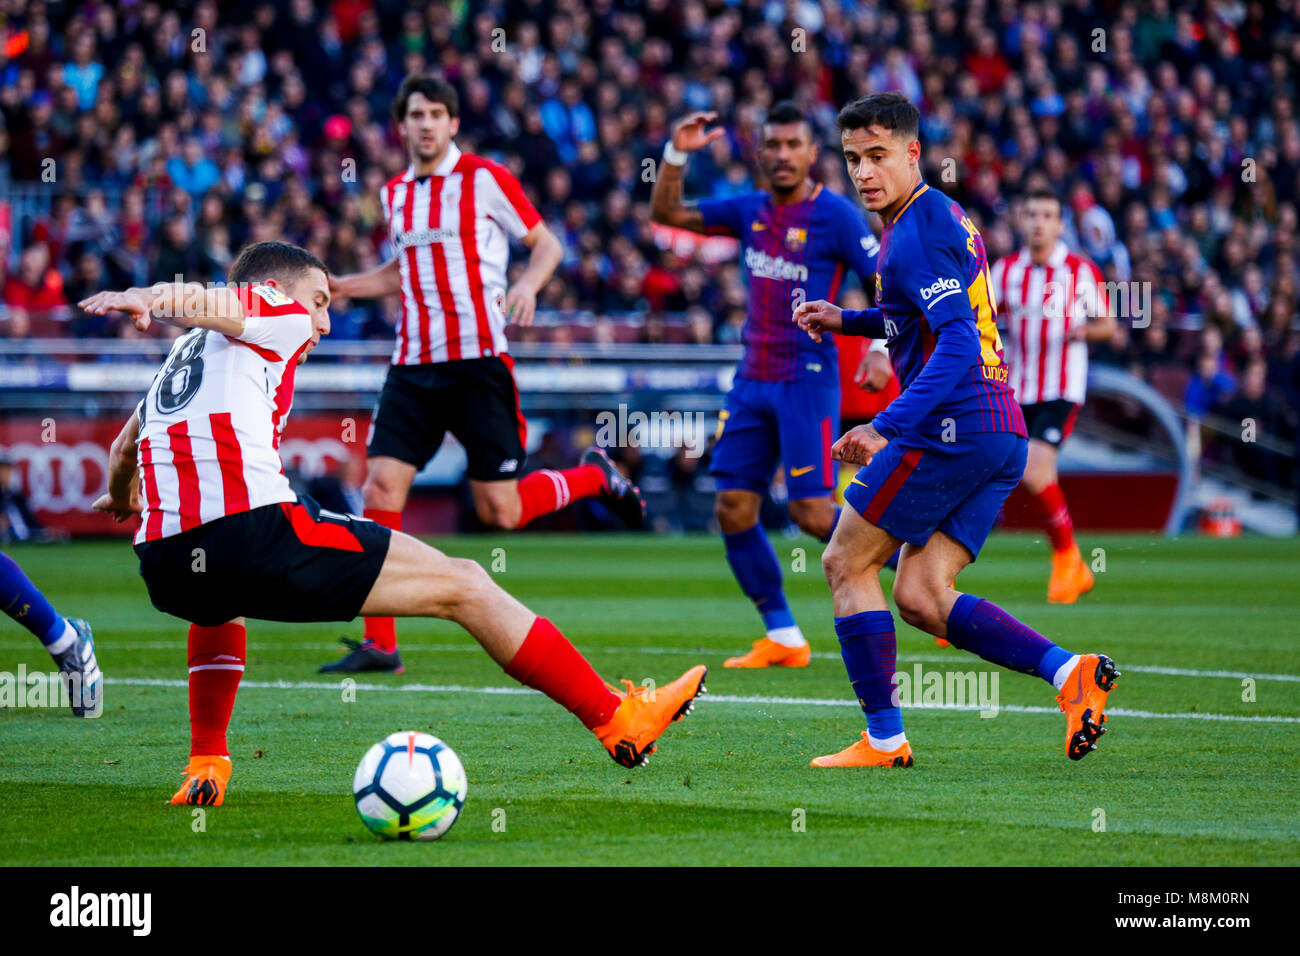 March 18, 2018 - Barcelona, Barcelona, Spain -   (14) Coutinho and (18)De Marcos in the area of Ath. Bilbao during - Stock Image